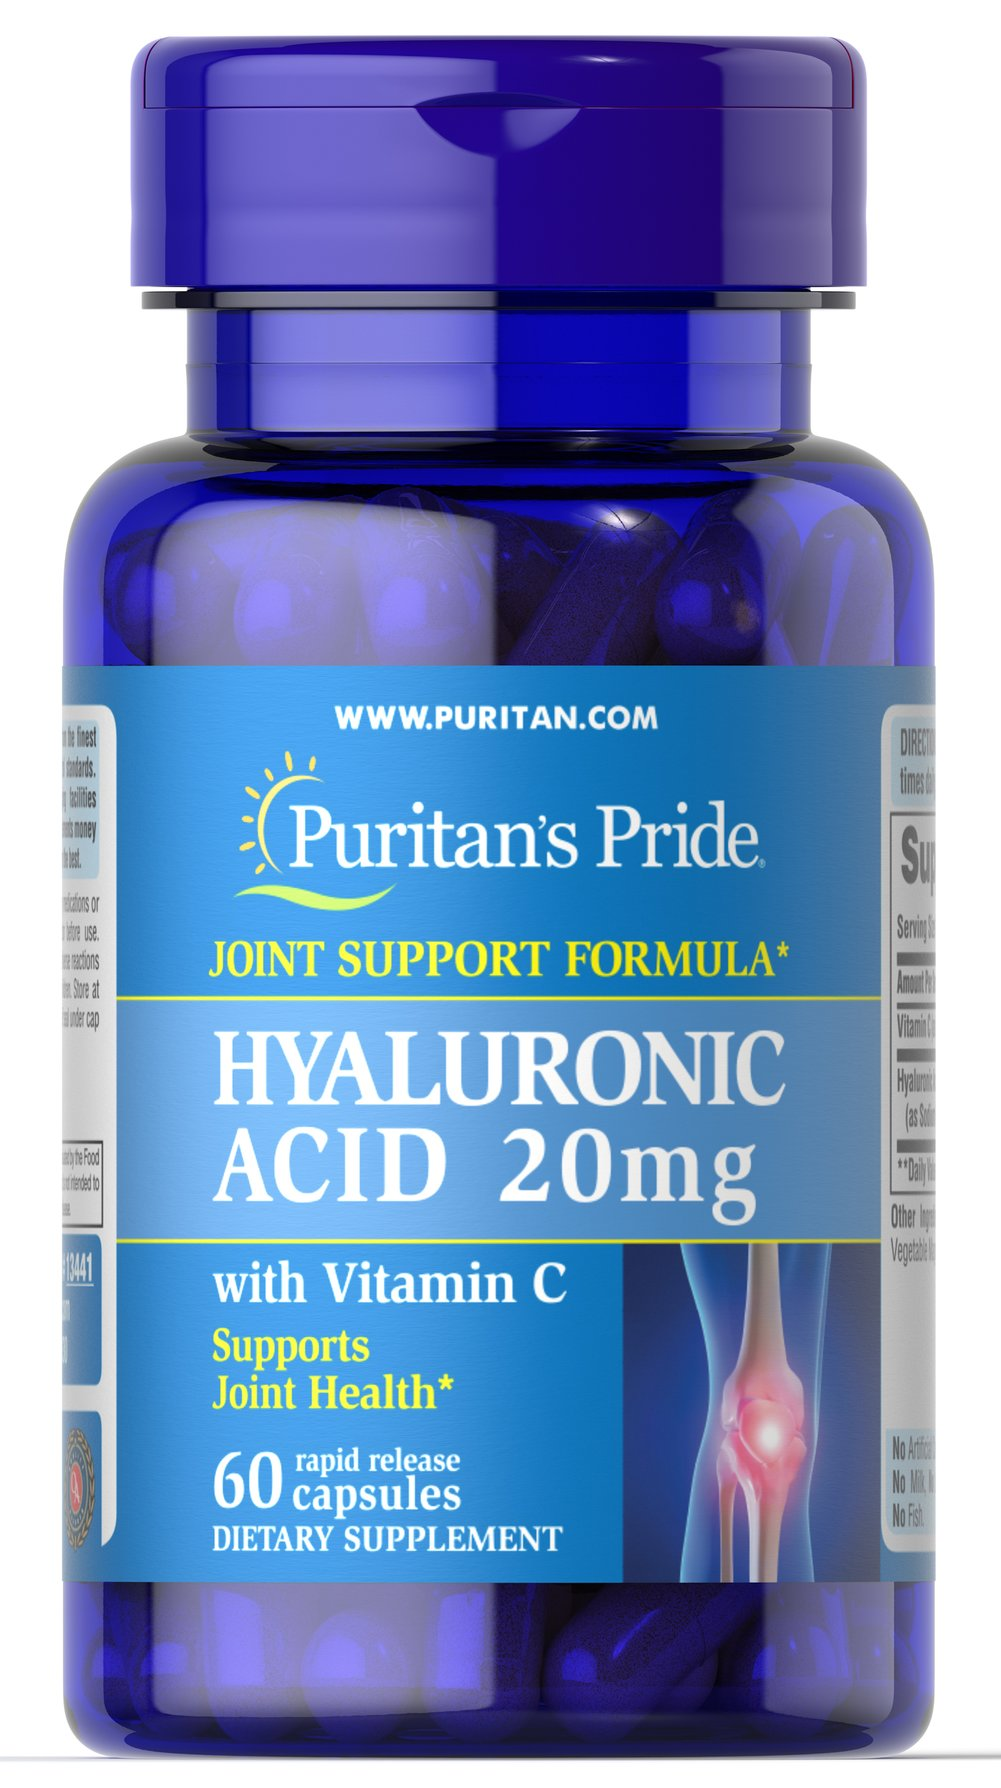 Hyaluronic Acid 20 mg <p>Hyaluronic Acid is a polysaccharide found in almost all adult connective tissue, including skin.** <br /></p> 60 Capsules 20 mg $11.99